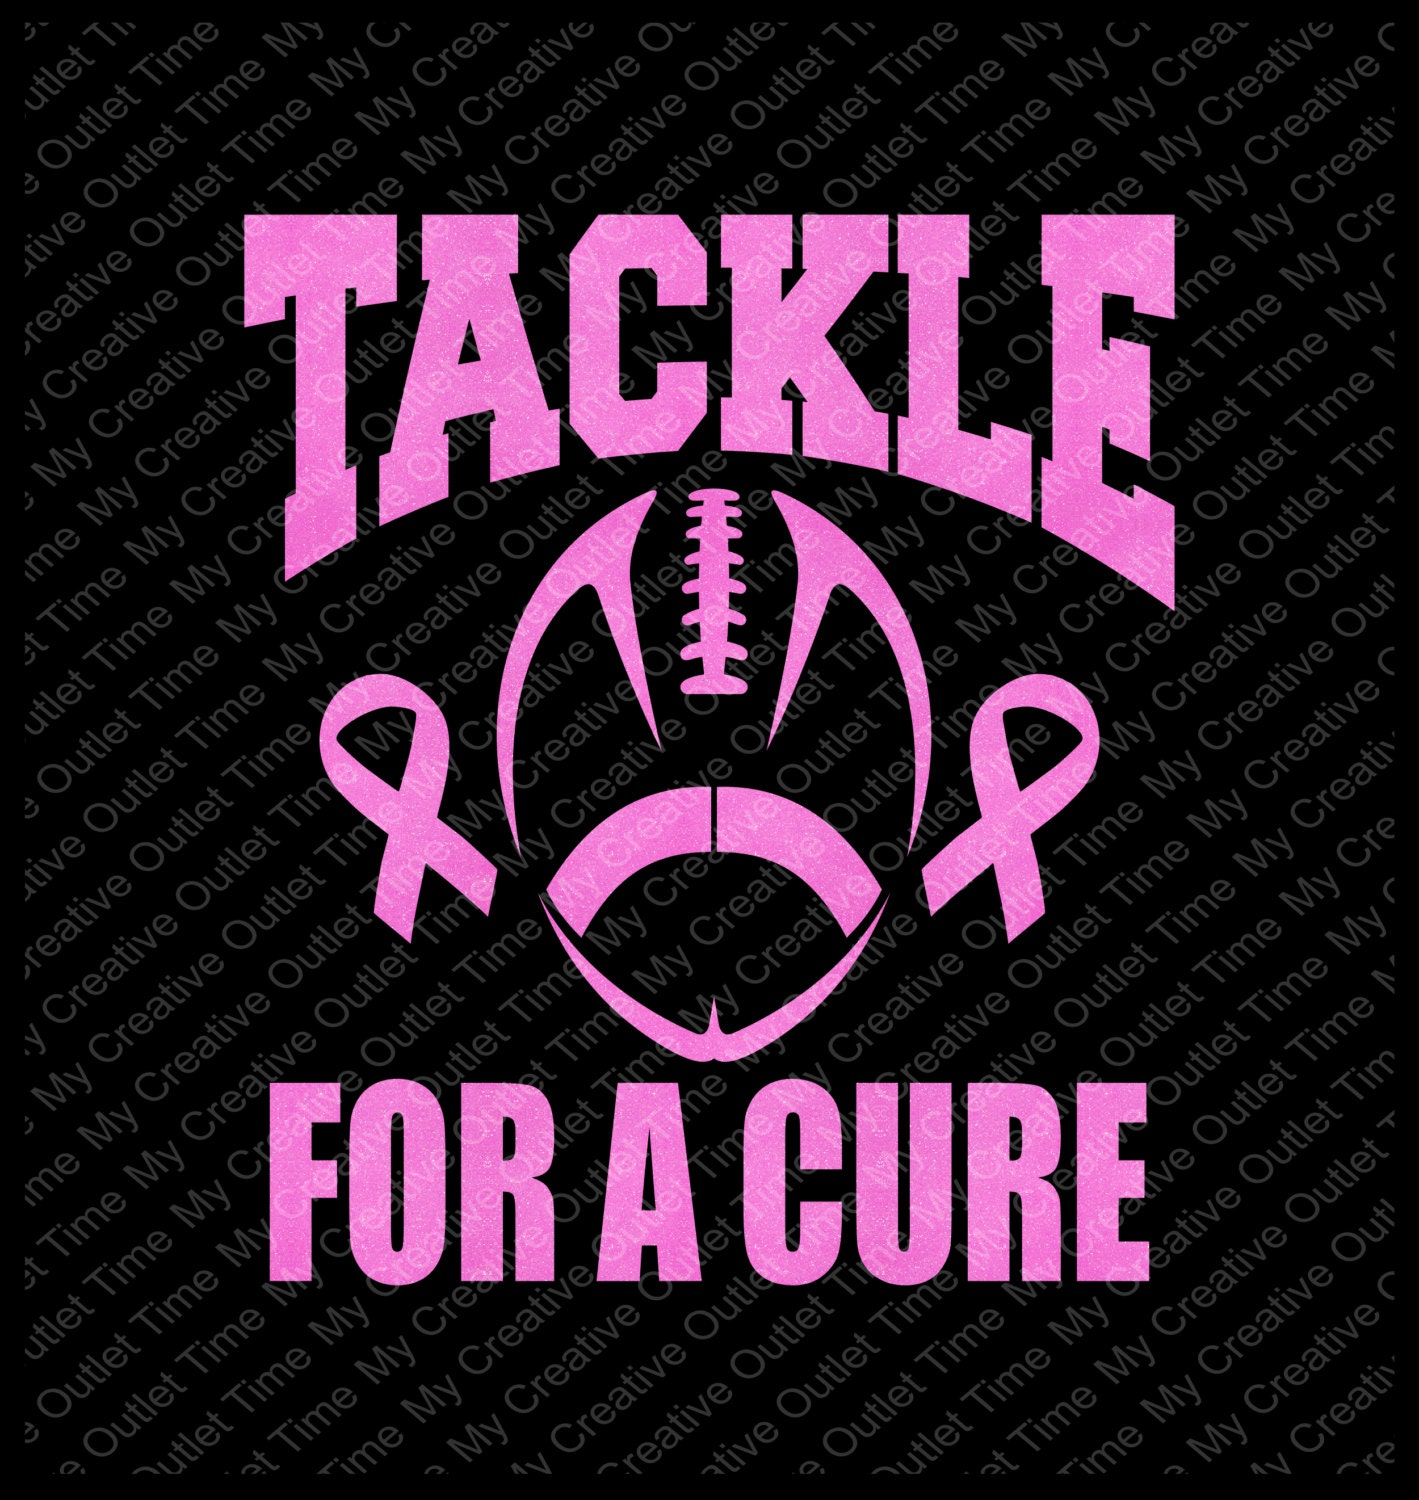 custom tackle cancer or tackle for a cure football breast Ribbon Vector Black Cancer Awareness Ribbon Vector